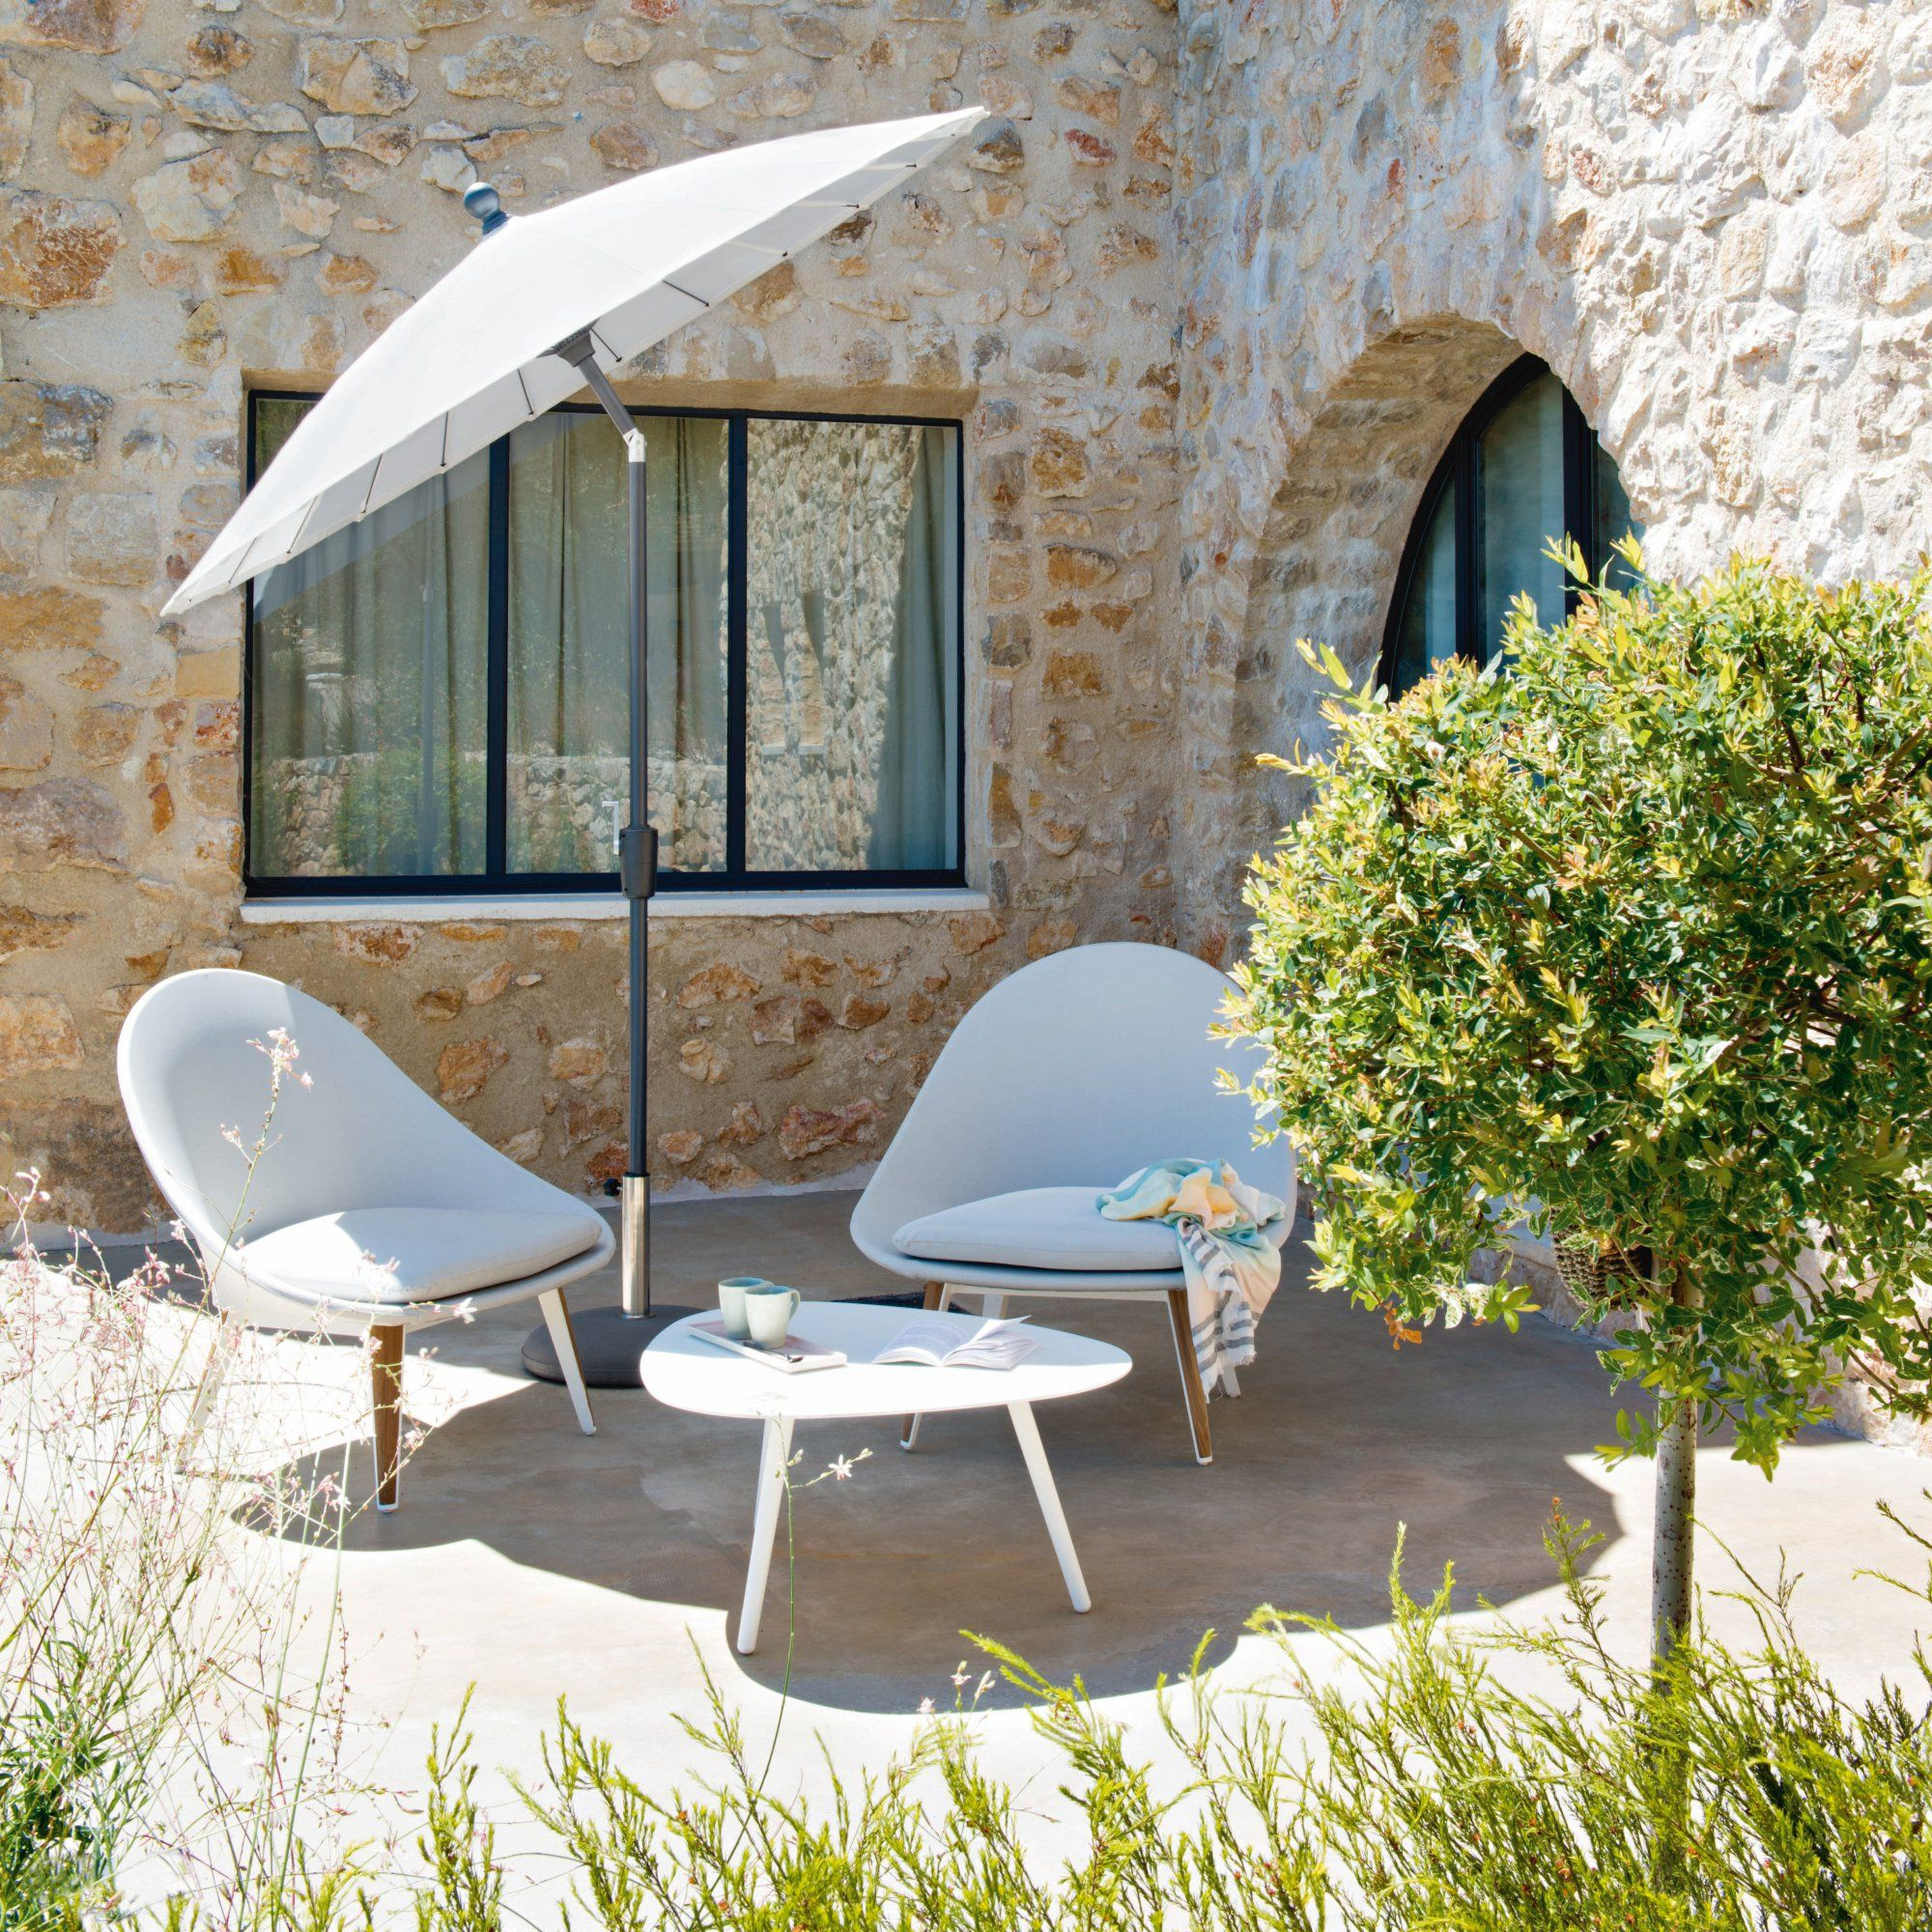 Vlaemynck | Mobilier Jardin, Fauteuil Confortable ... tout Mobilier De Jardin Vlaemynck